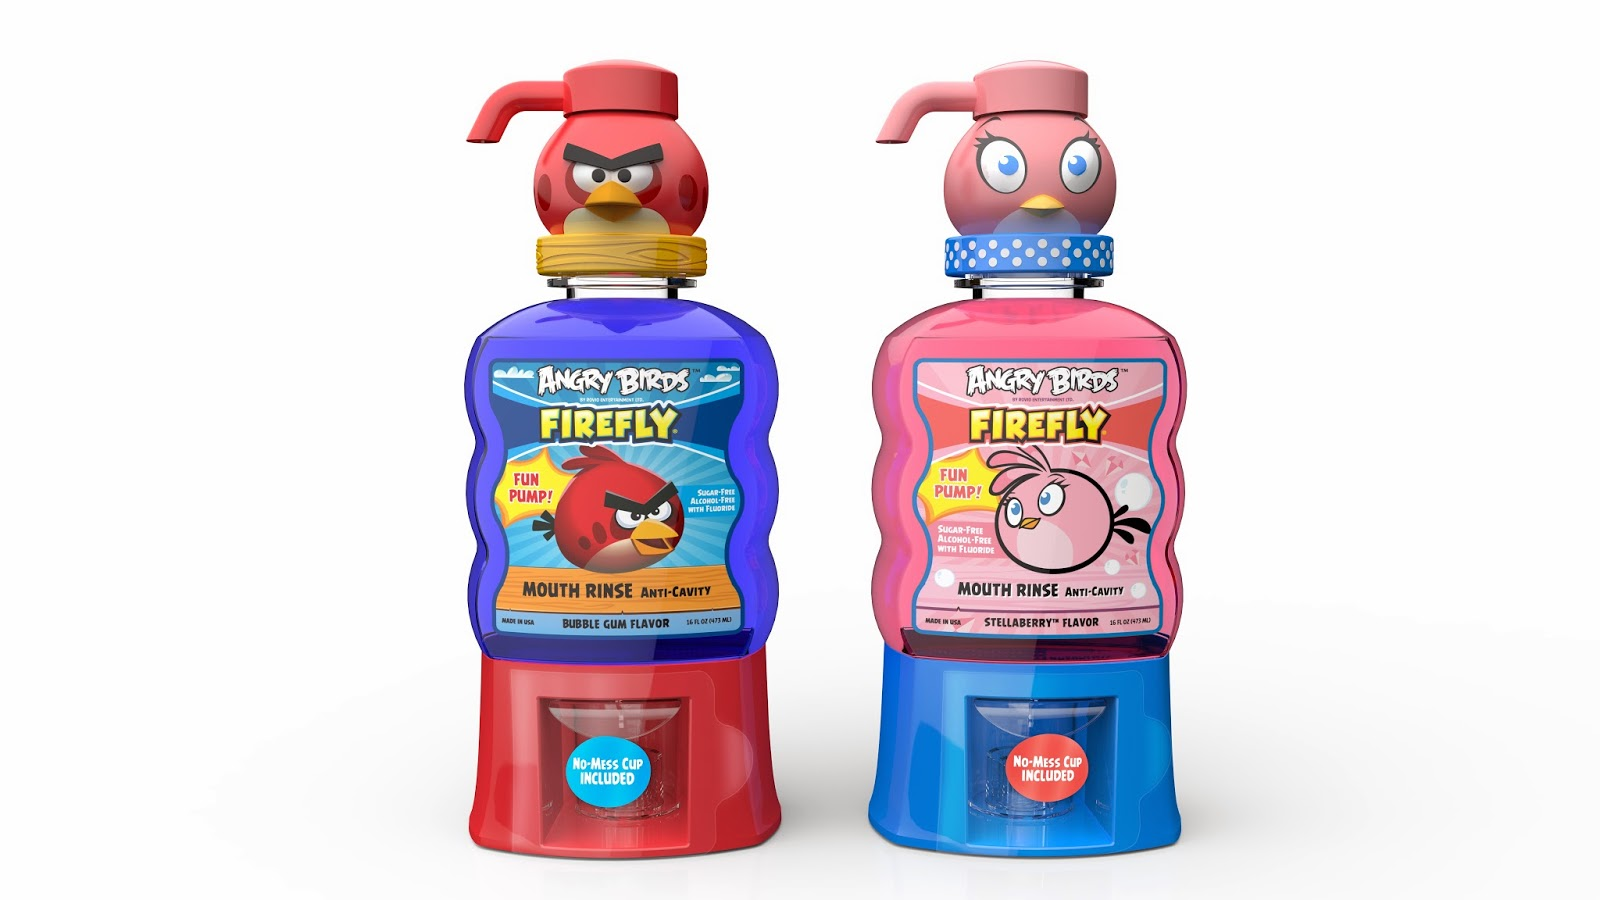 firefly angry birds mouth rinses